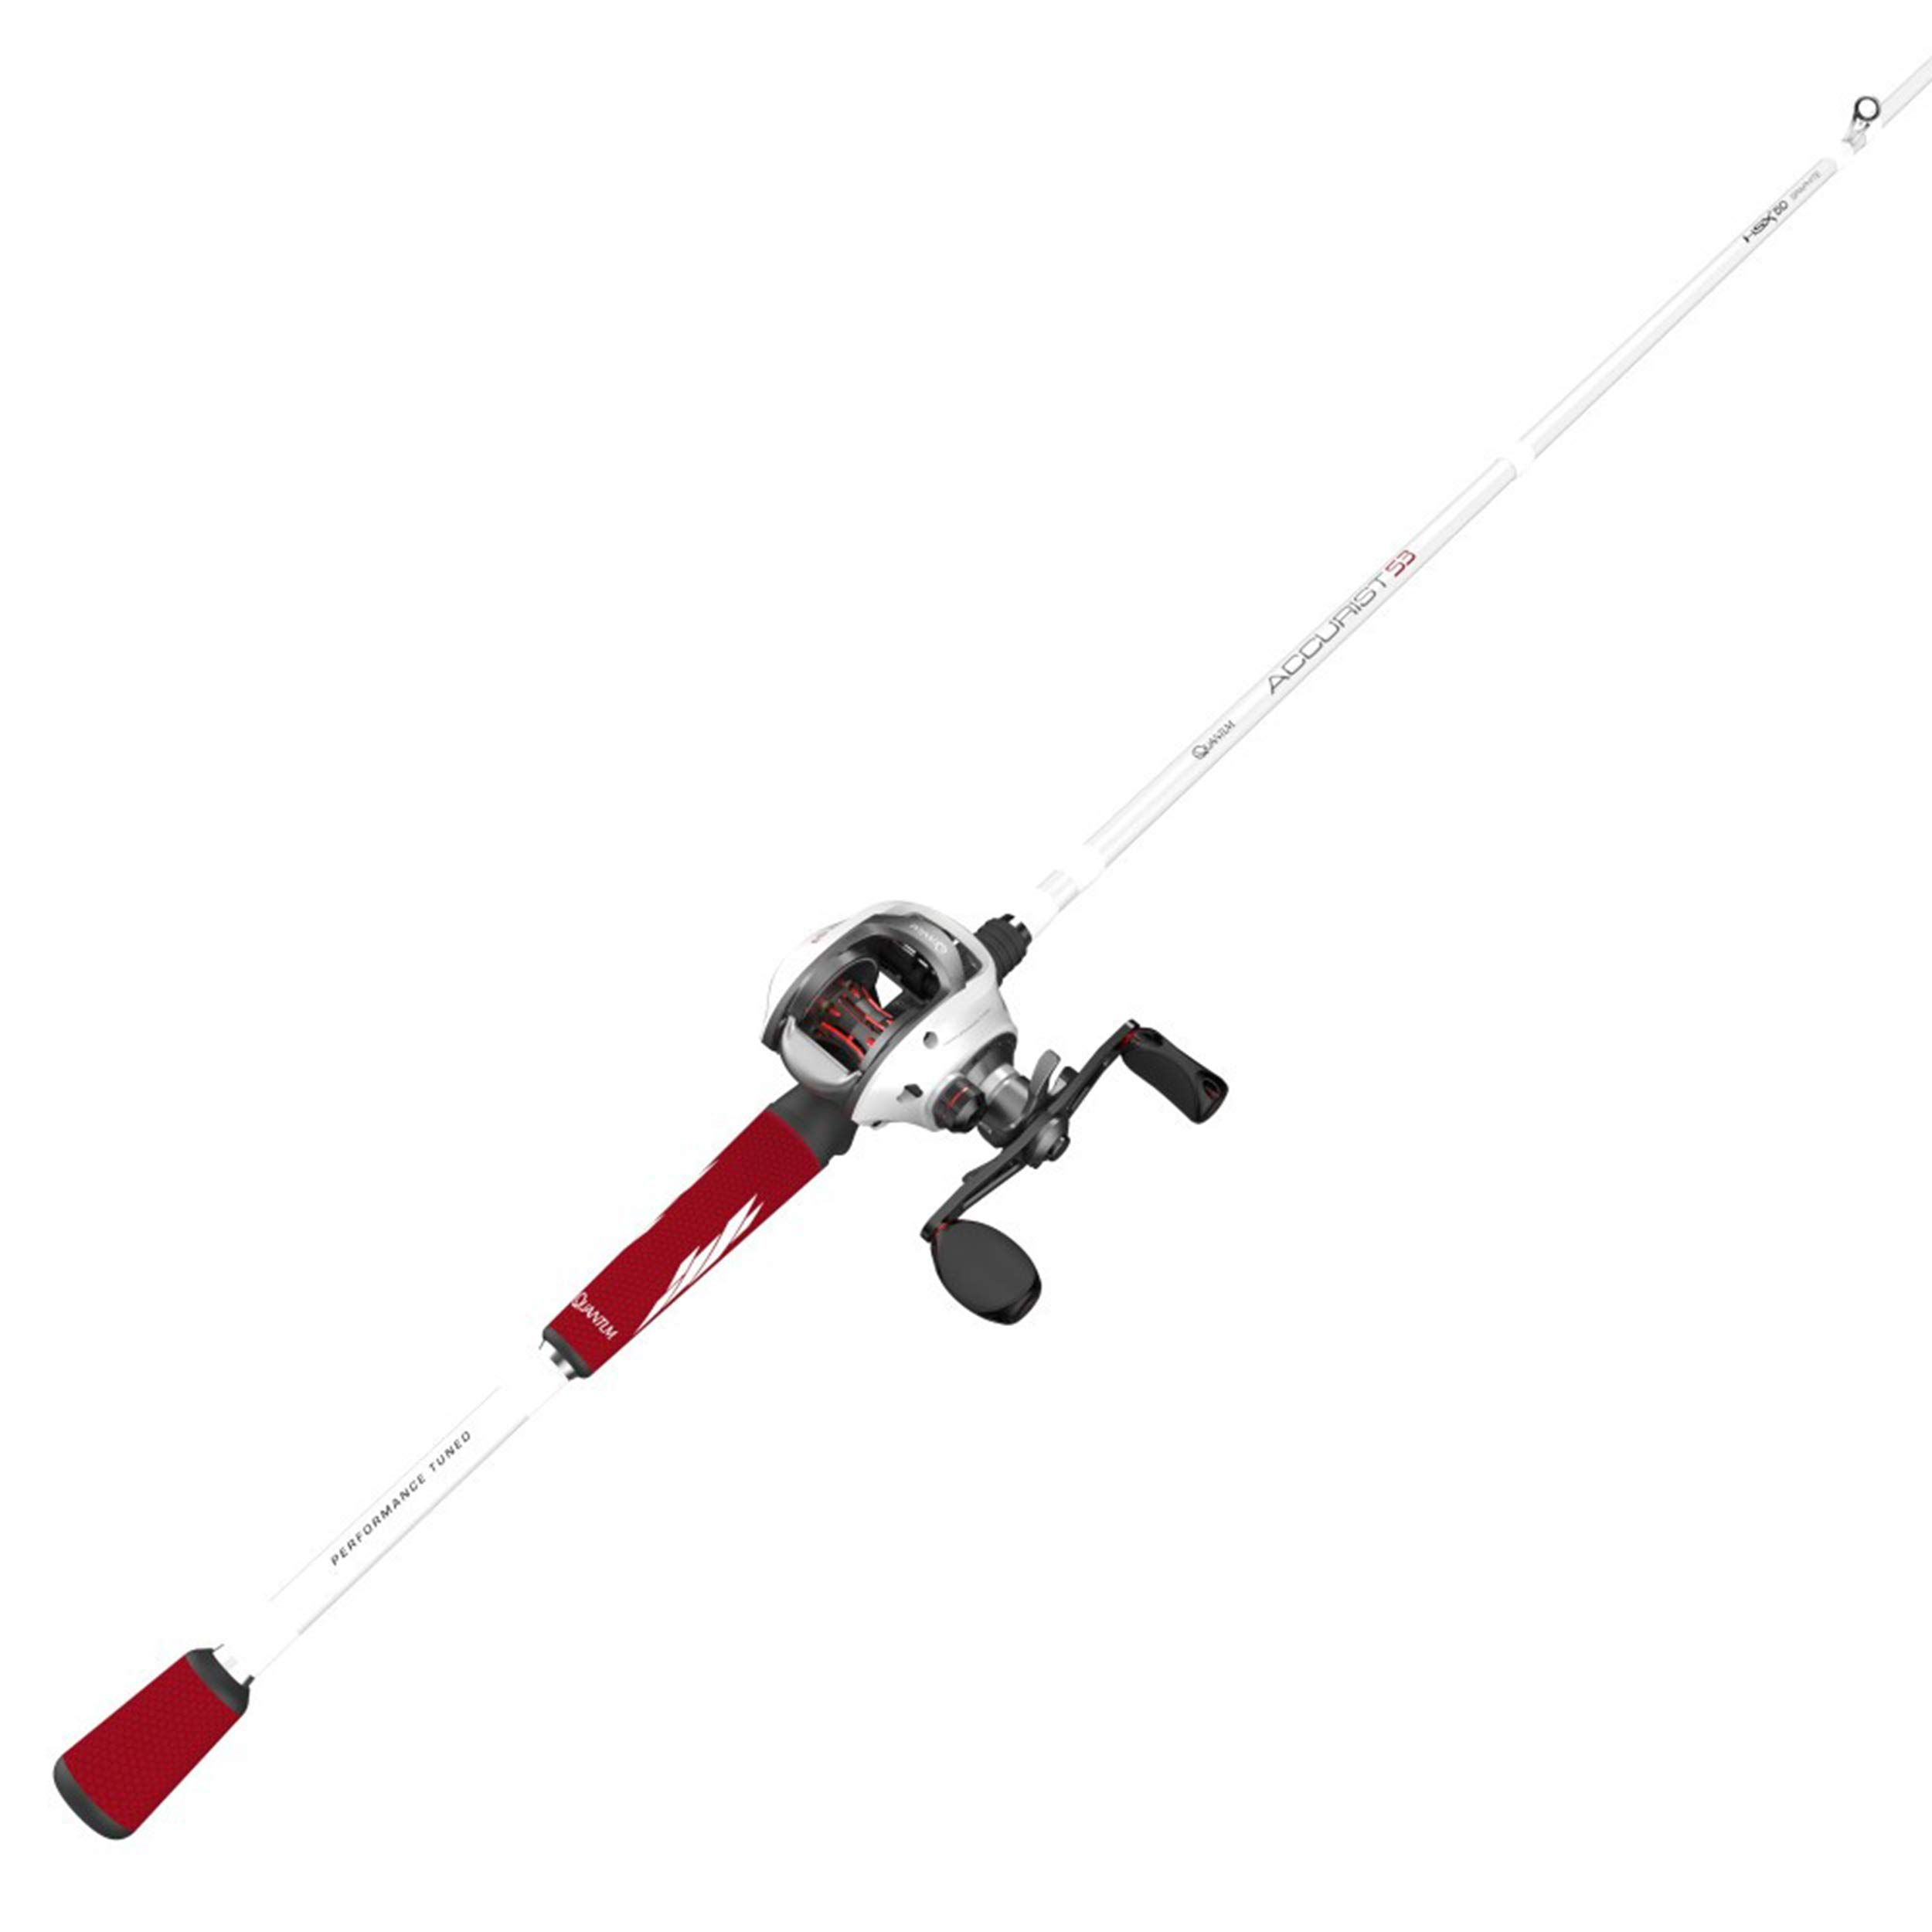 Quantum Accurist S3 Pt Baitcast Reel And Fishing Rod Combo 7 Feet Medium Heavy 7 0 1 Right Hand Size 100 Https Fishingrodsree Rod Fishing Rod Right Hand